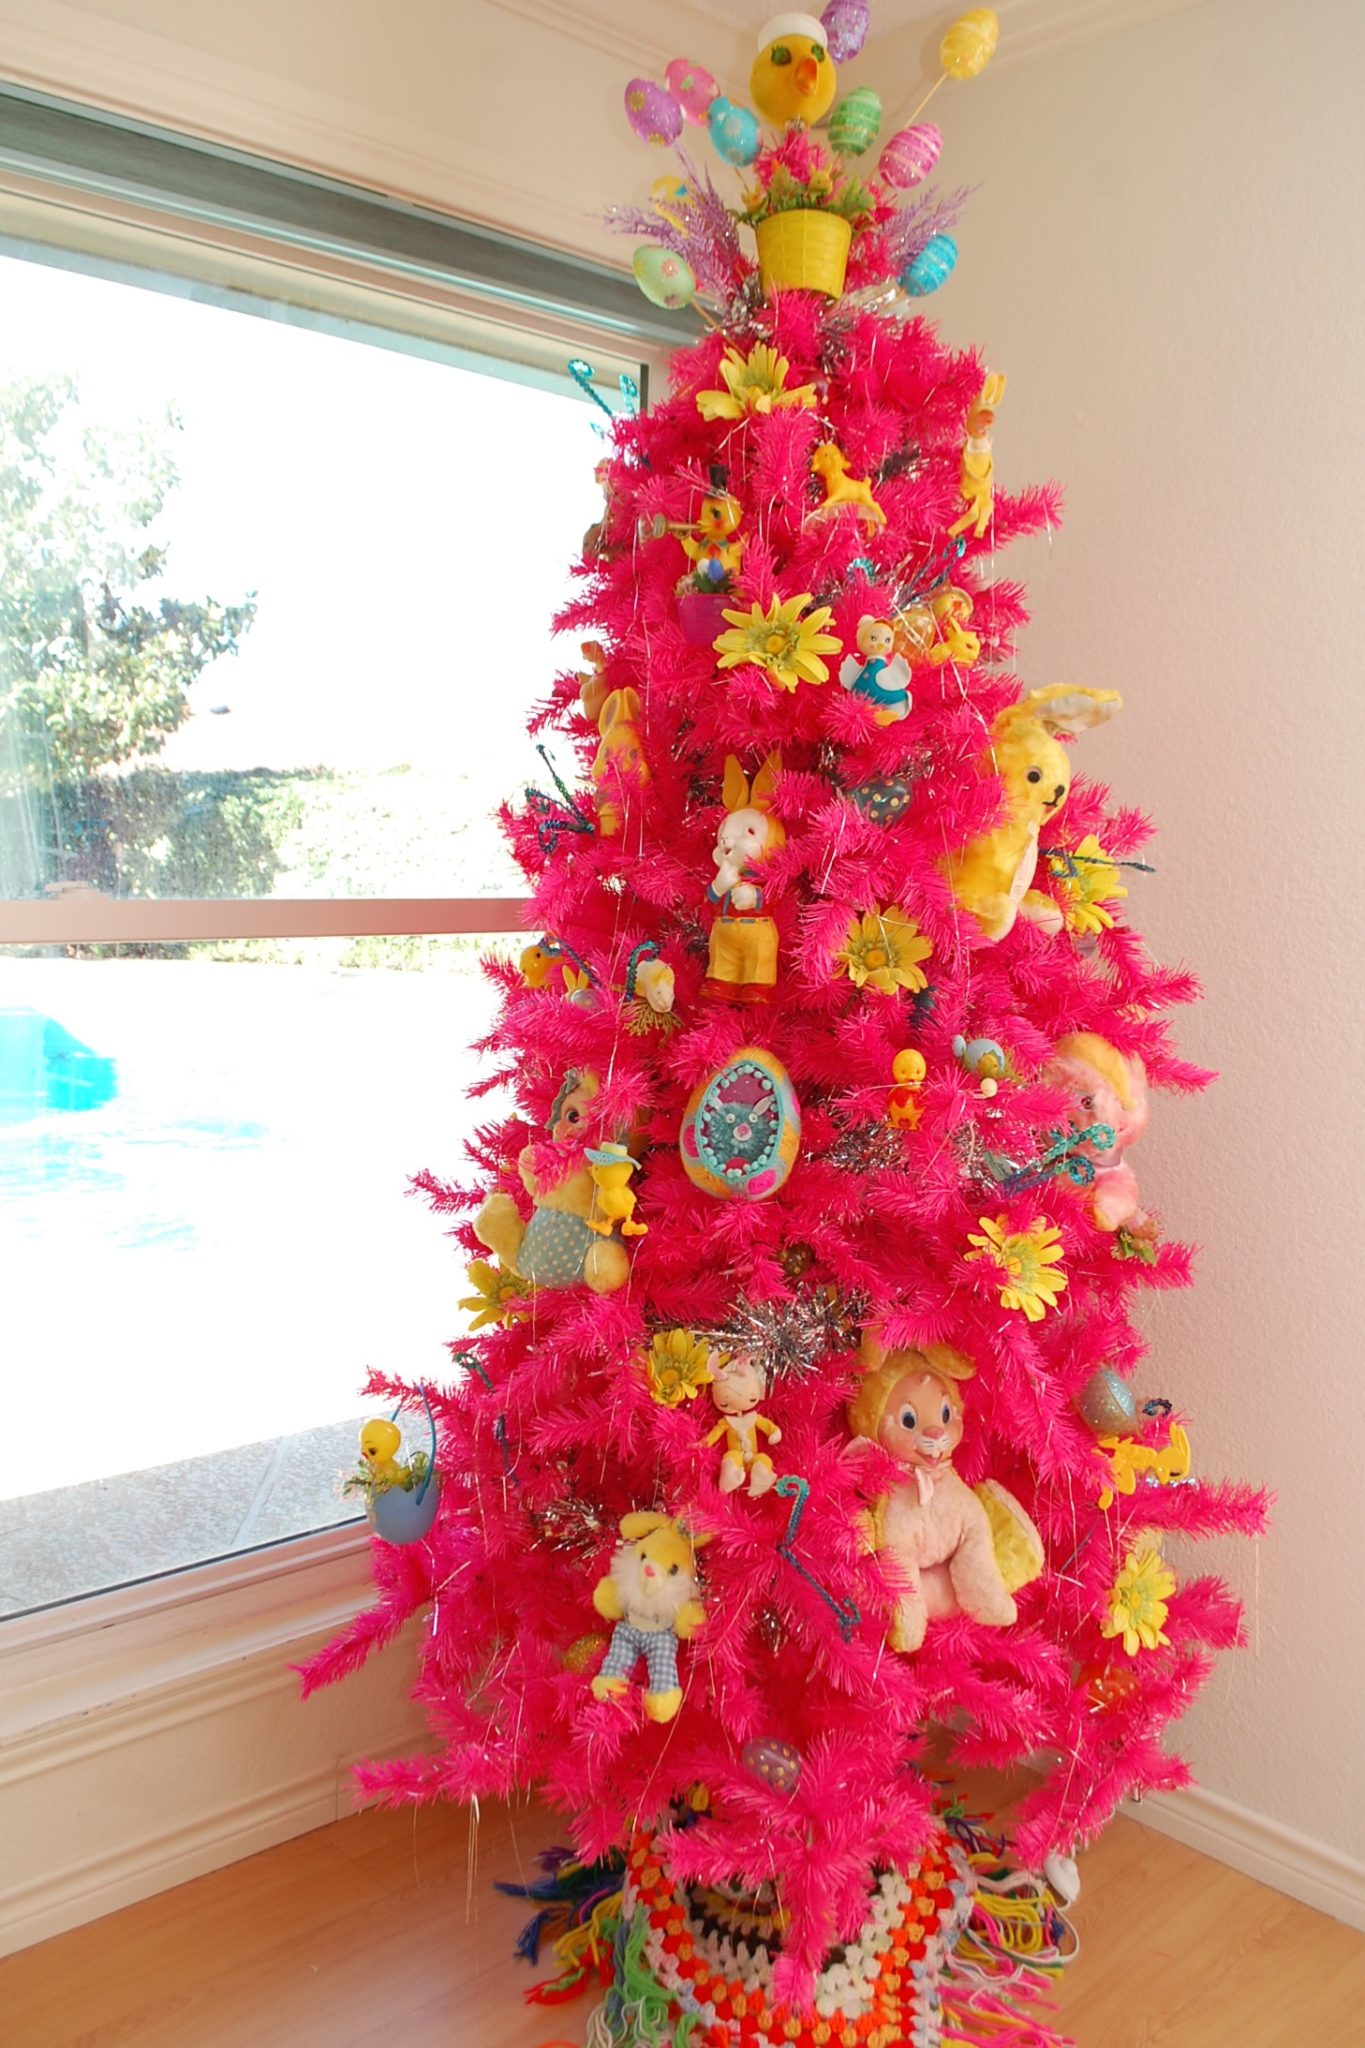 Decorate Christmas Tree For Easter : Decorating for easter using a christmas tree jennifer